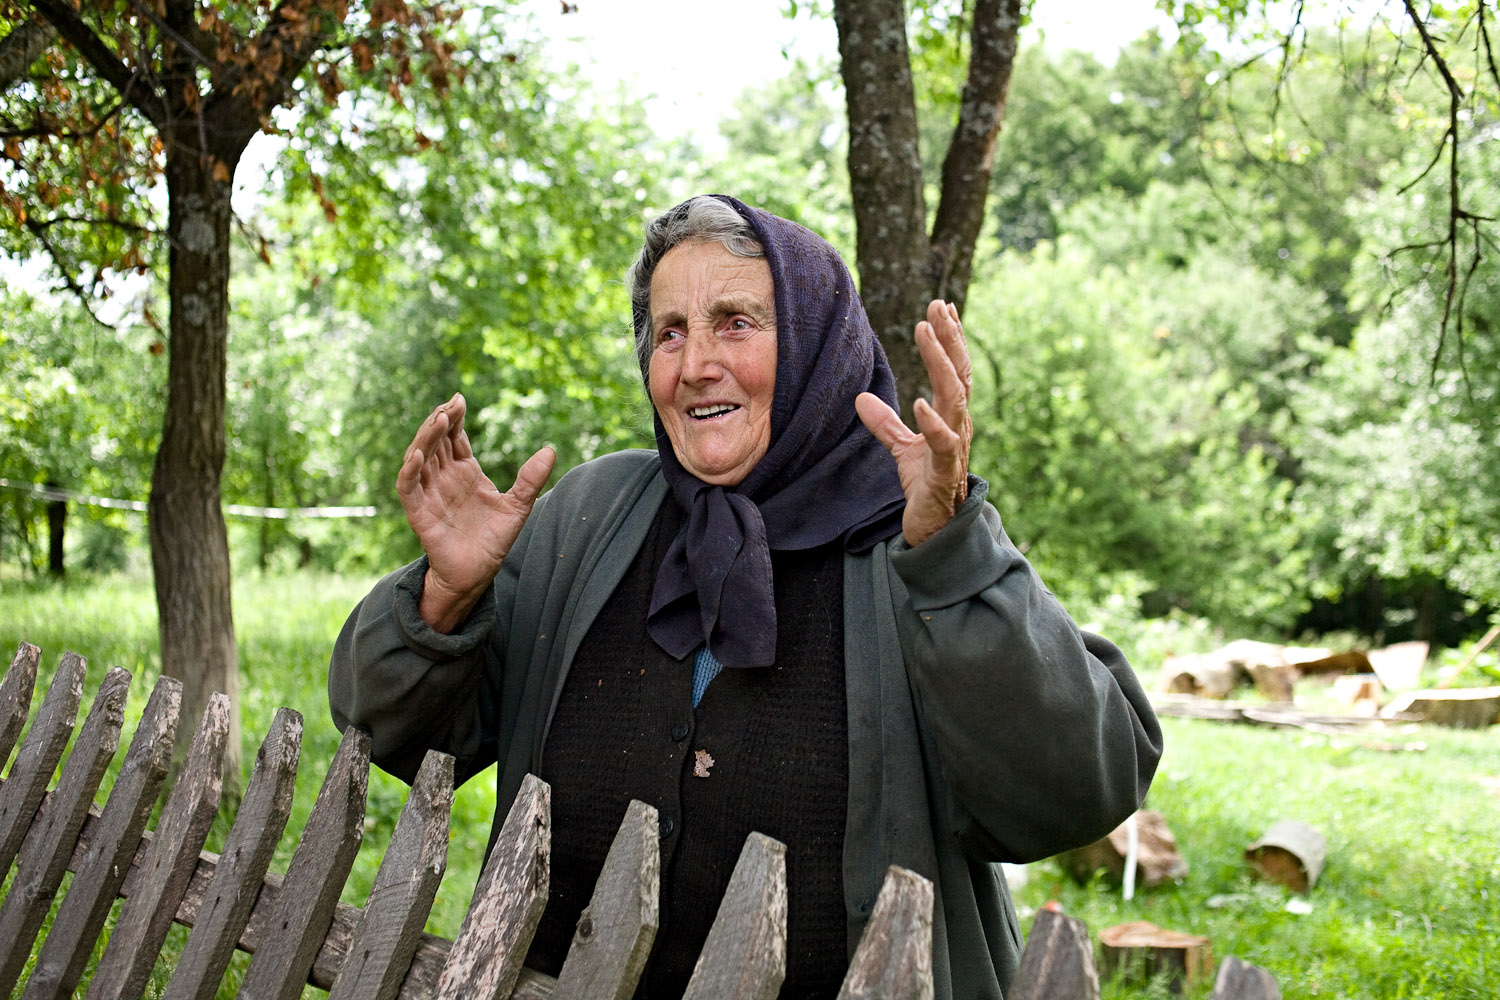 Zece-Hotare village, Romania.Maria Tap, 80 years old, says that young people don't want to look after animals anymore. She wakes at five o'clock to work in her garden, although this year a late frost has ruied much of the crops. Otherwise she knits or looks after her cow.